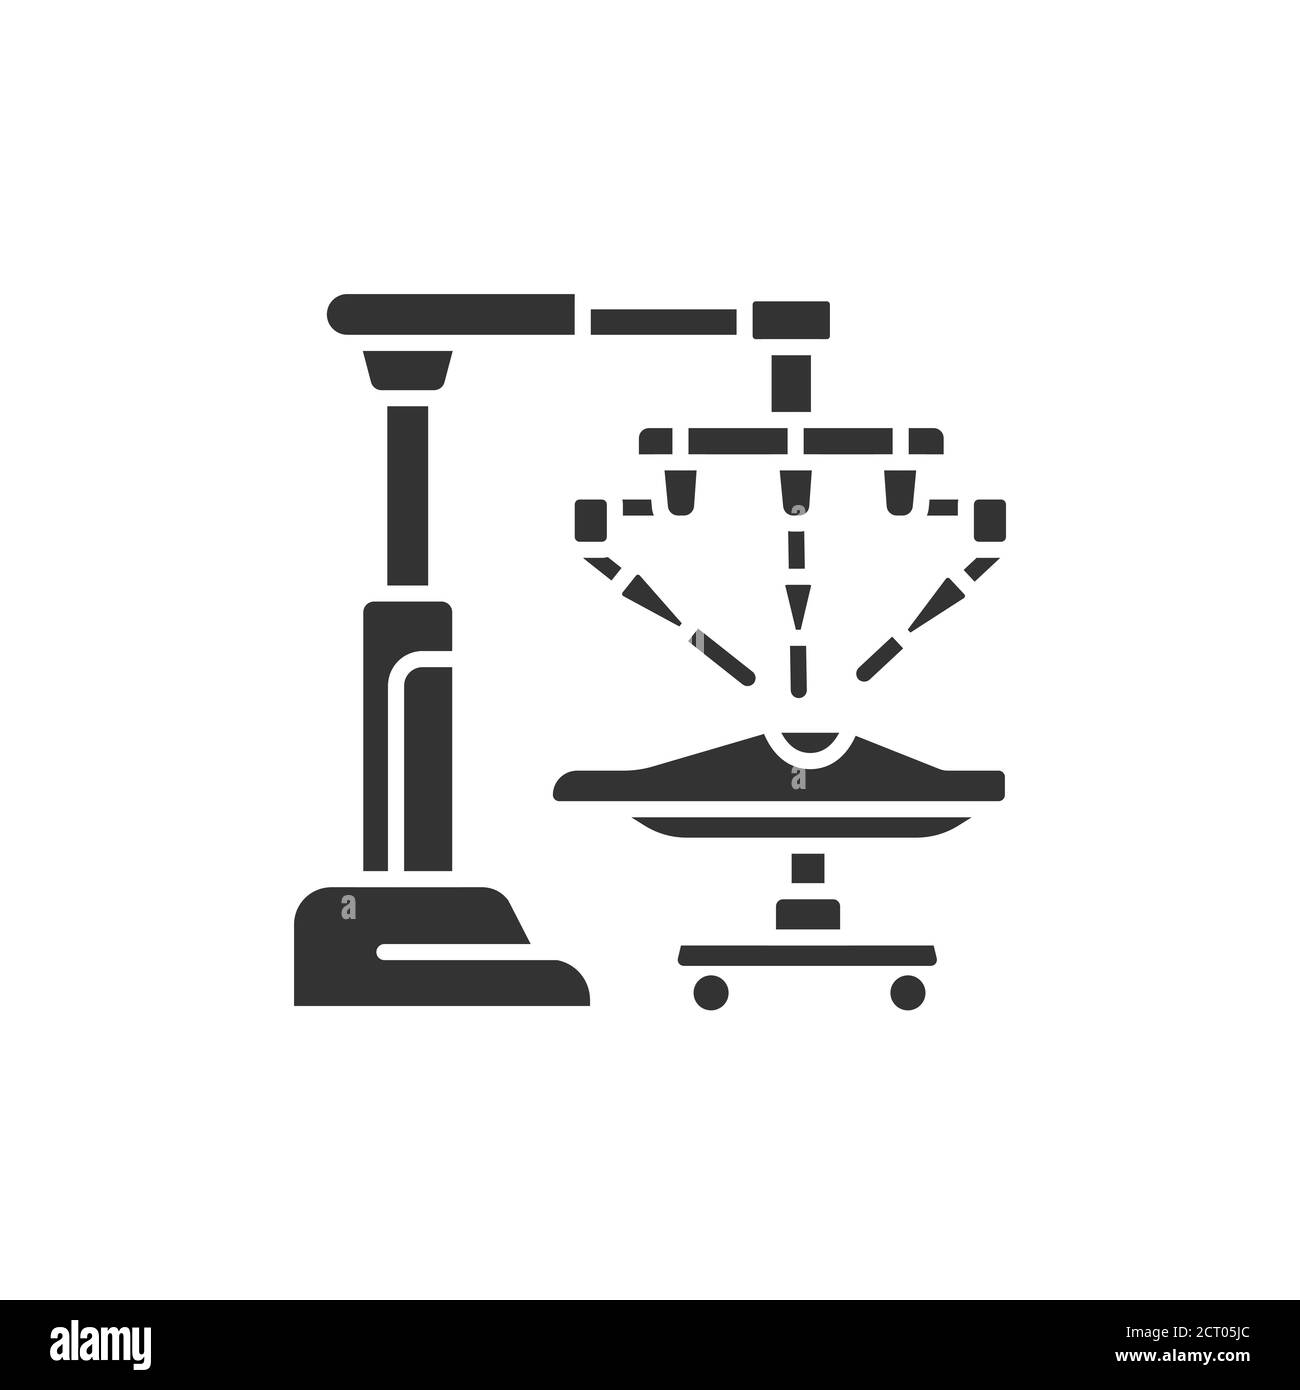 Medical robot black glyph icon. Robot surgeon makes a surgery patient on the operating table. Innovation in medicine. Sign for web page, app. UI UX Stock Vector